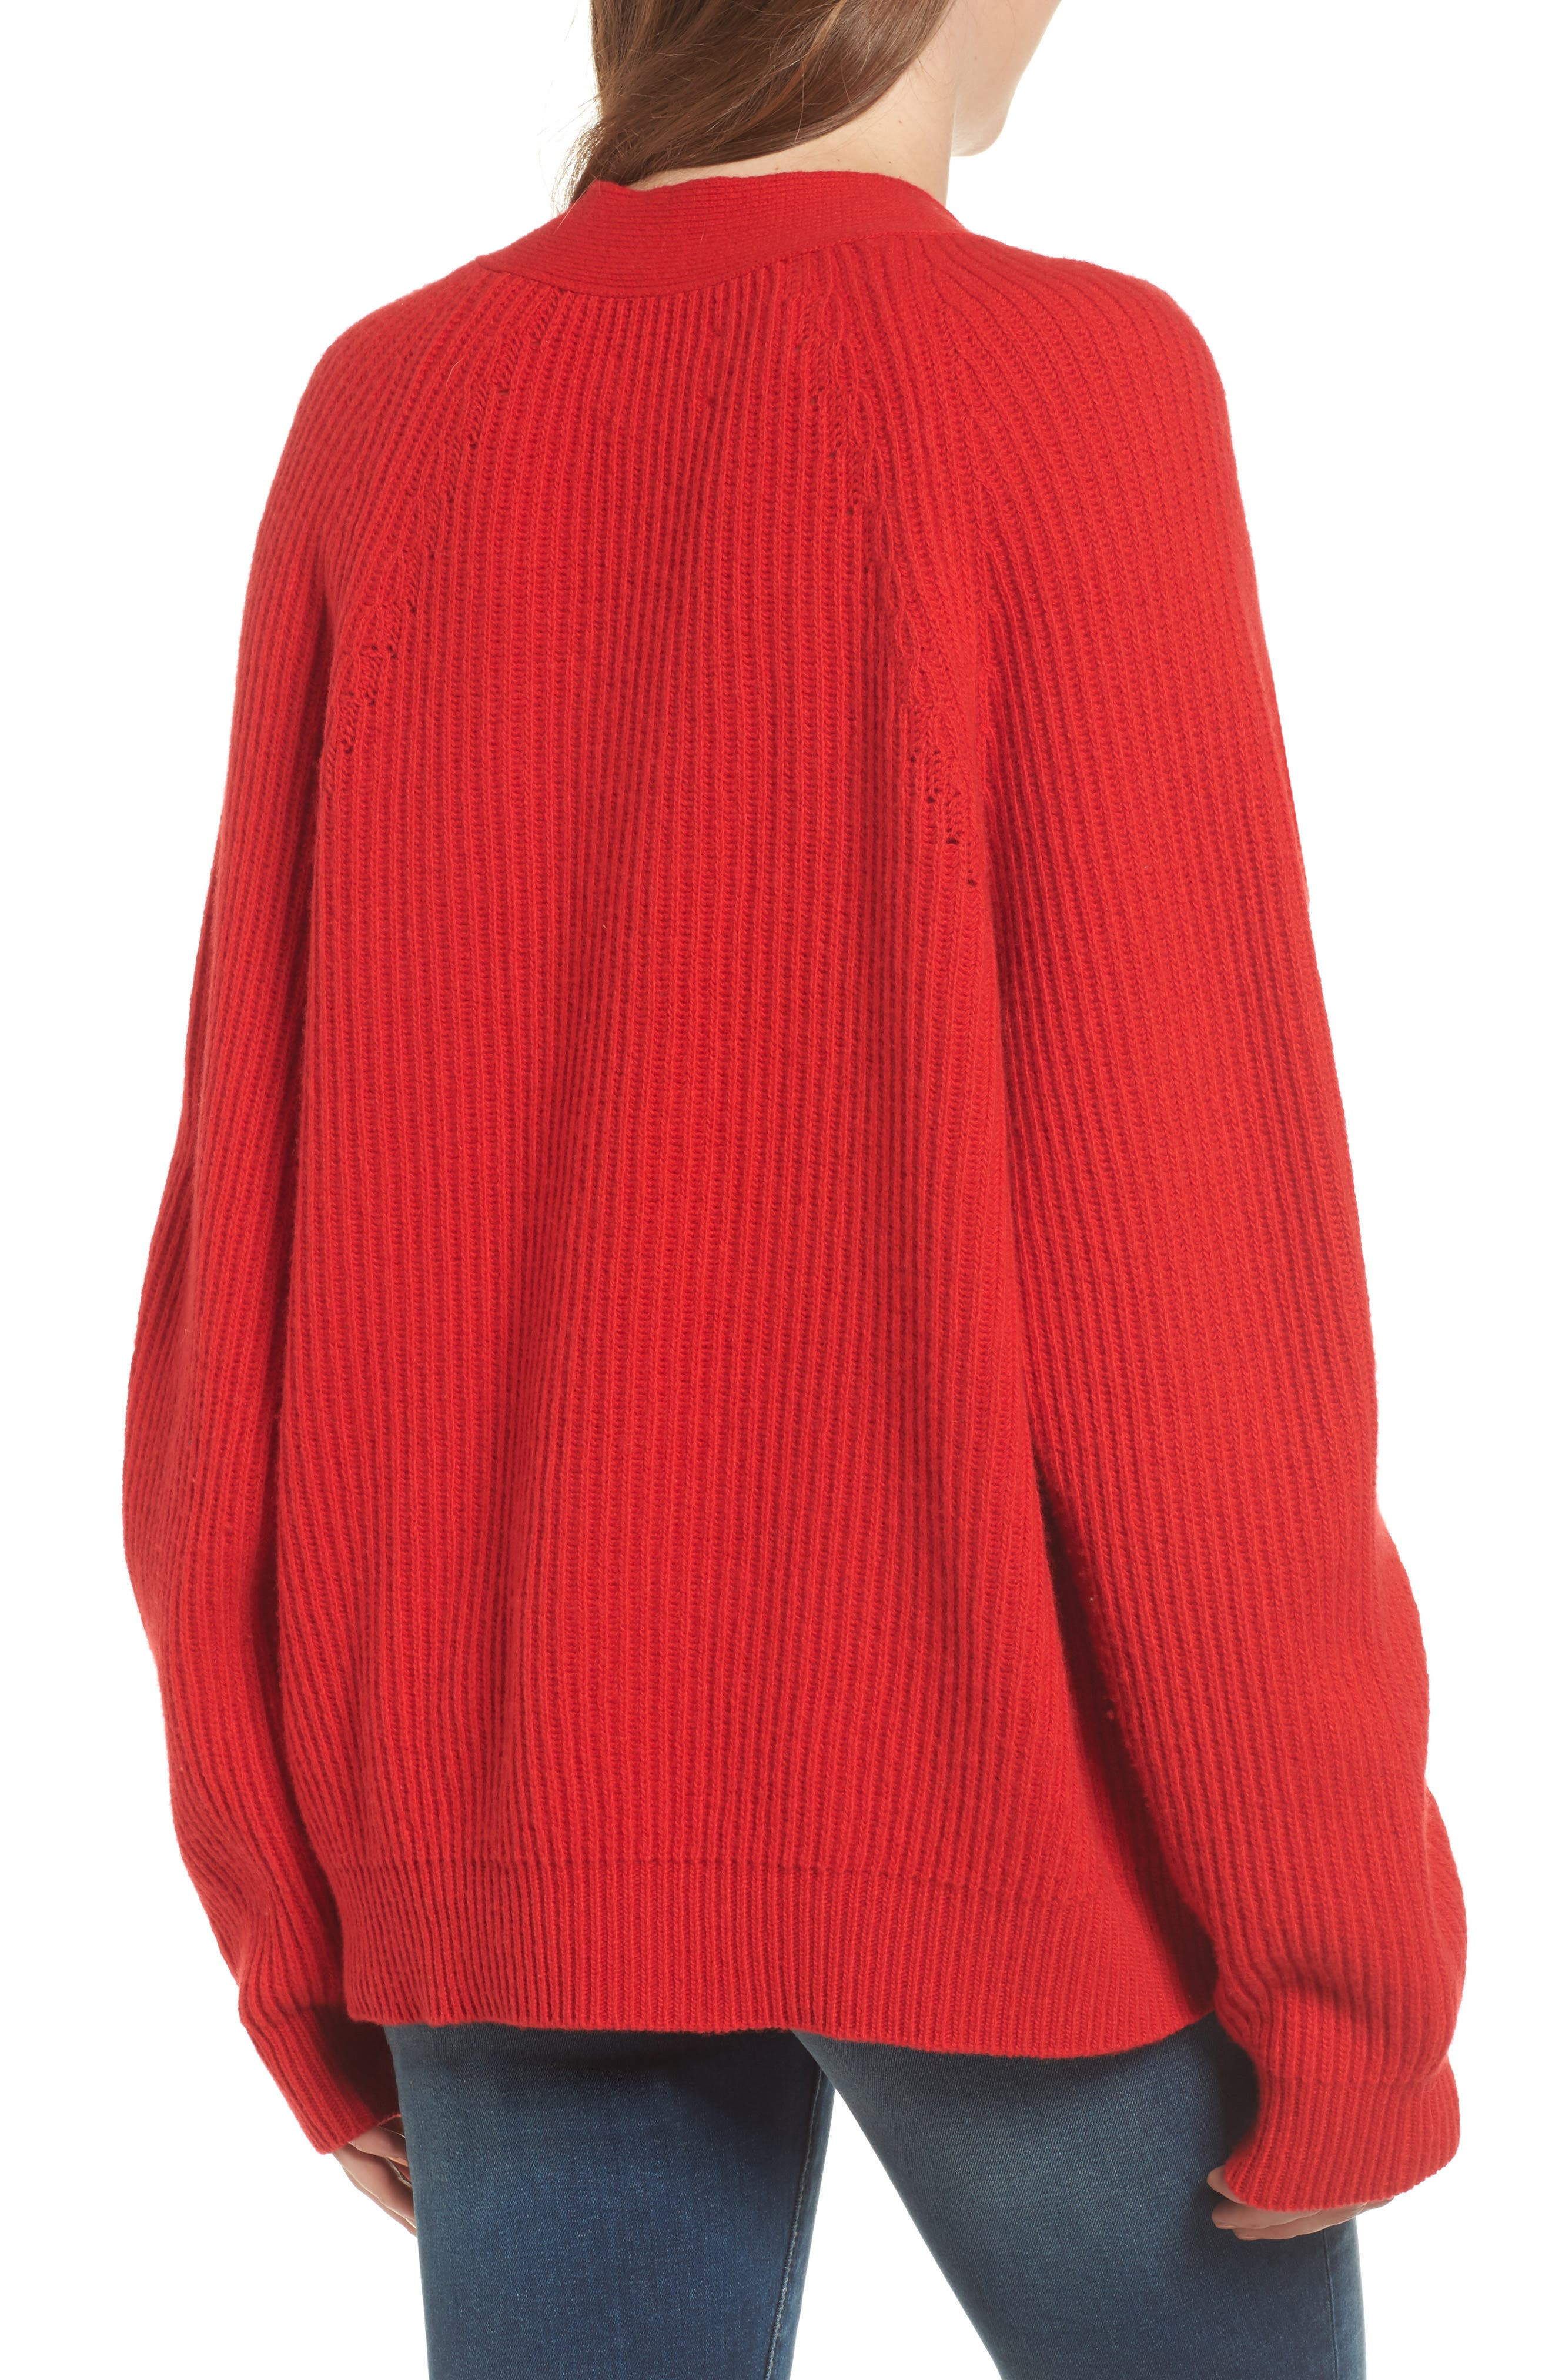 Kassy Wool Blend Sweater,                             Alternate thumbnail 2, color,                             Rouge